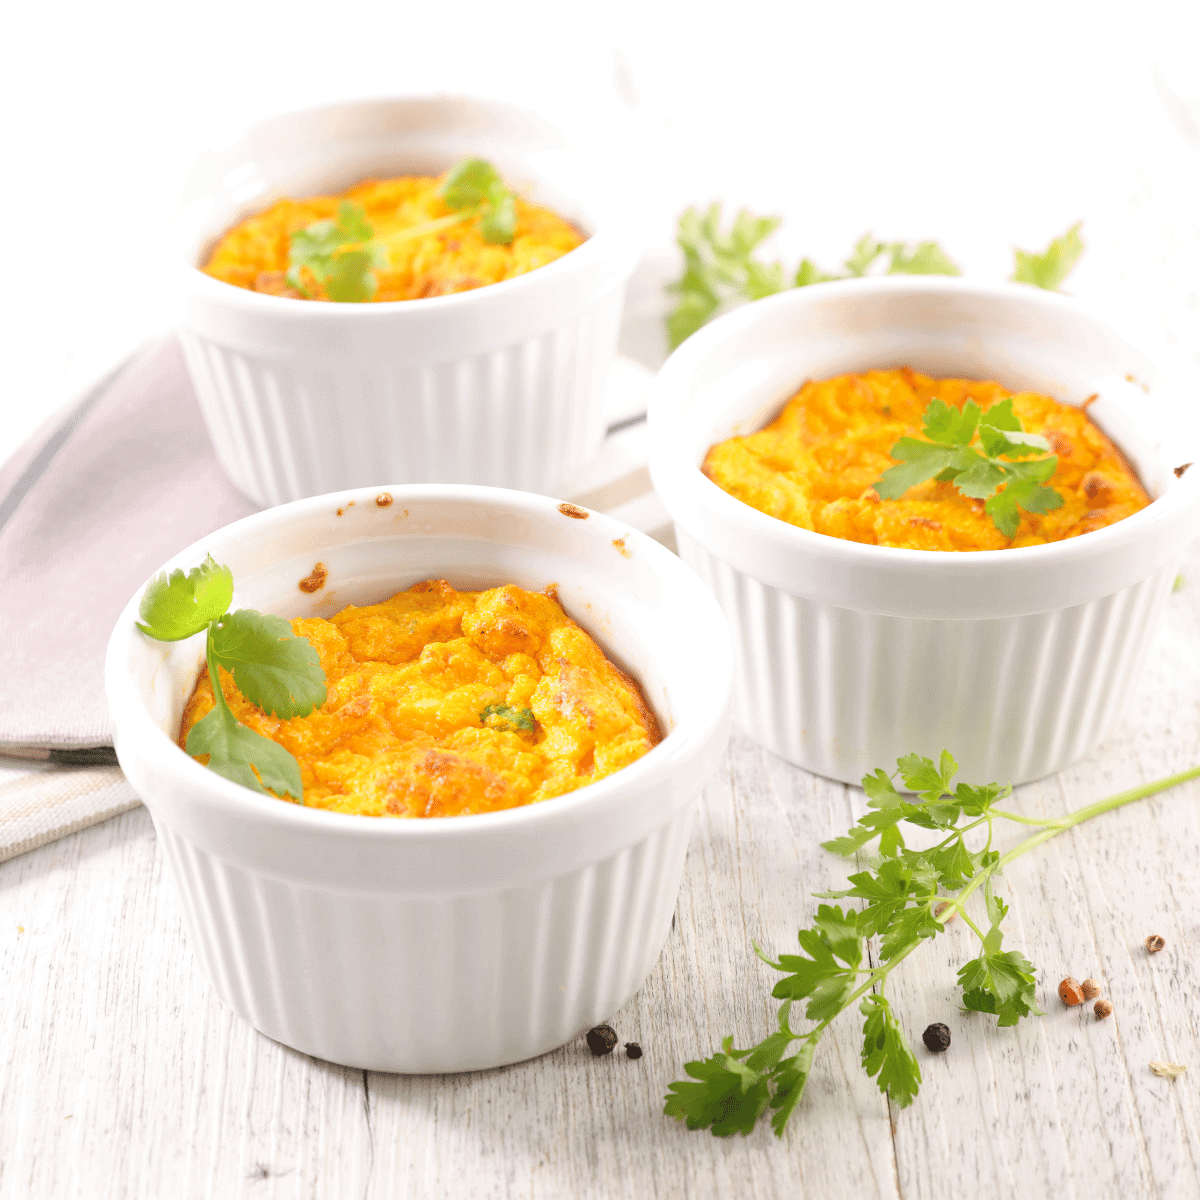 Low carb savory pumpkin souffle FI